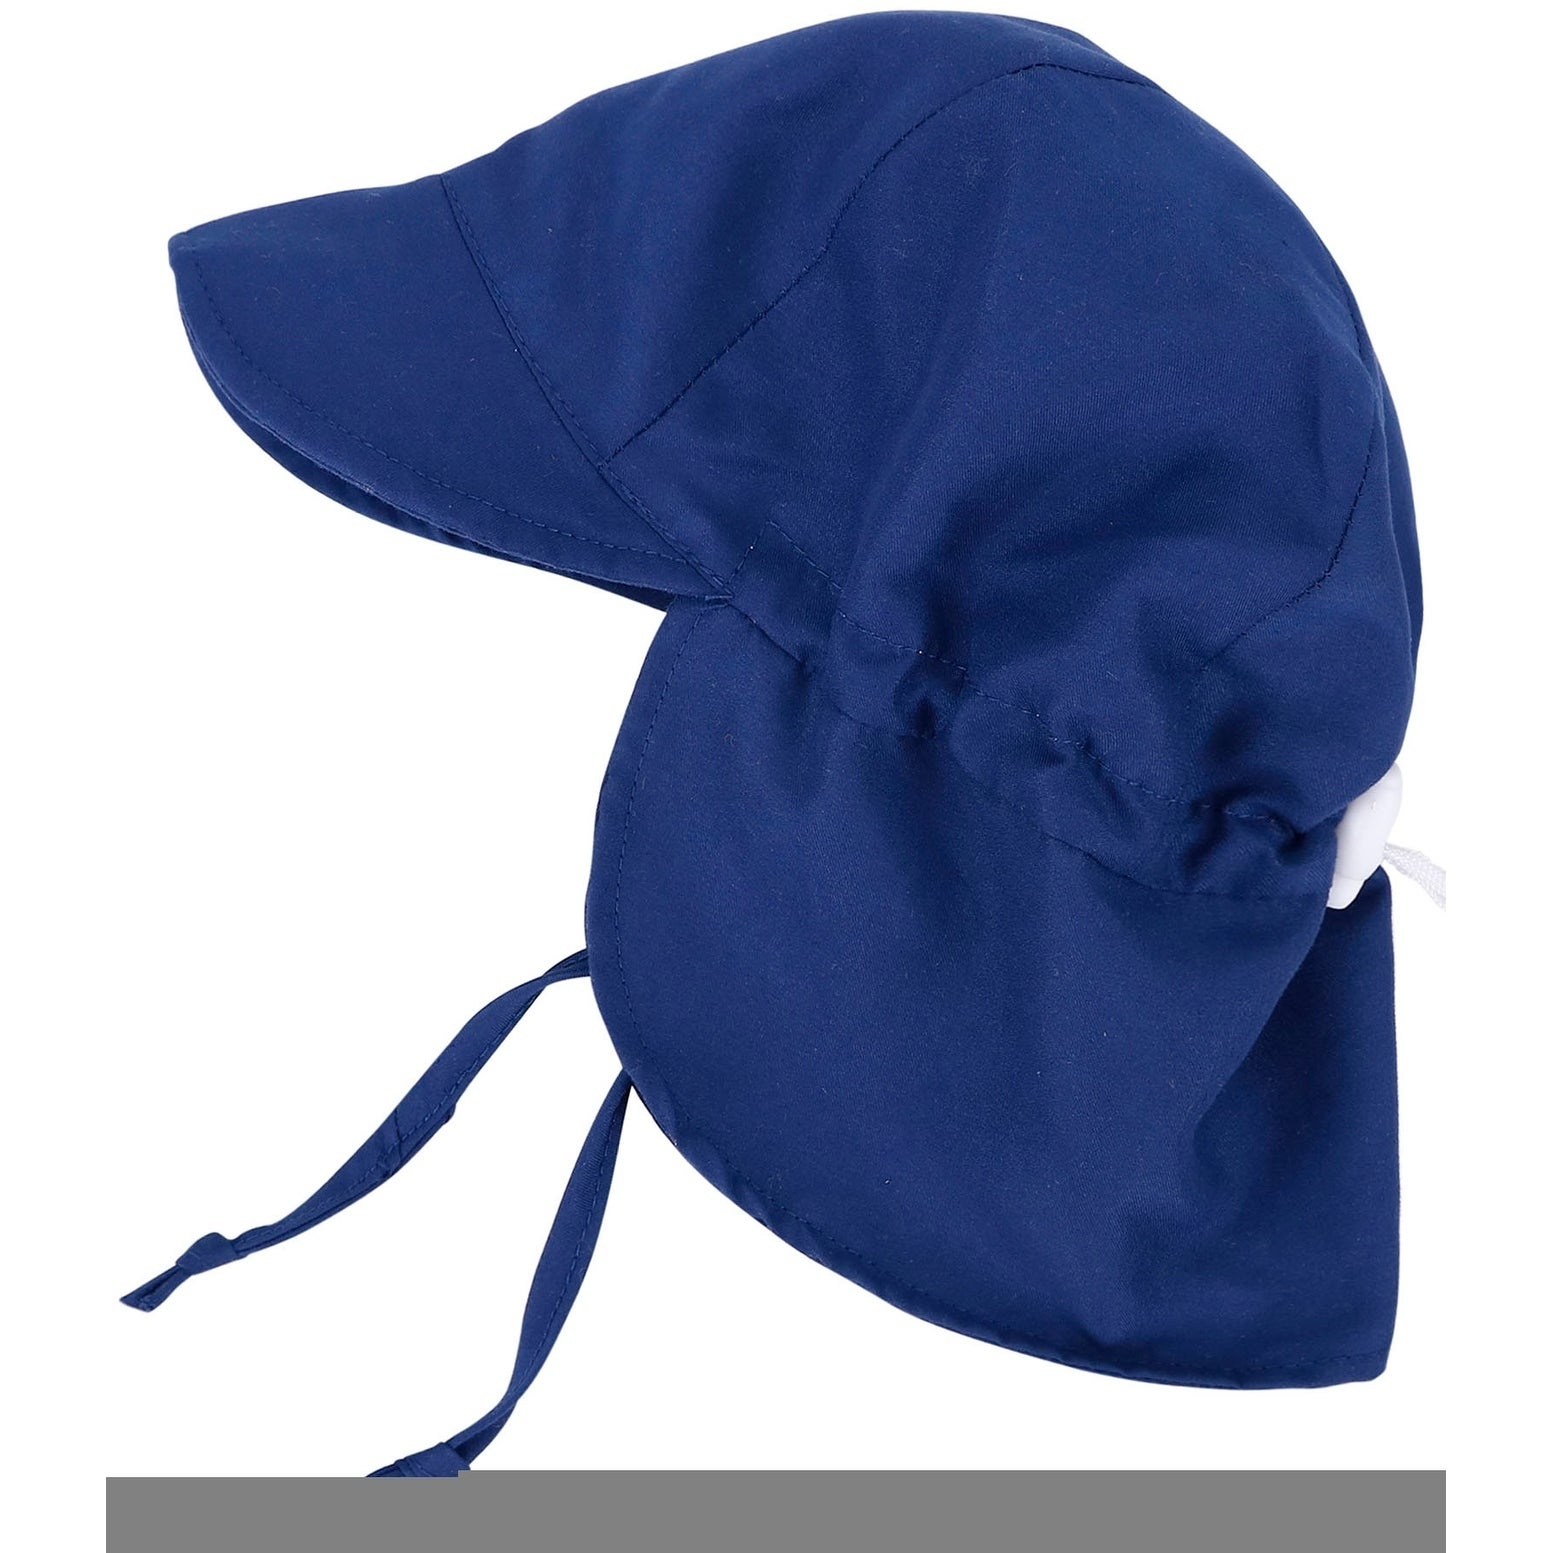 094c6726baf Shop UPF 50 Sun Protection Baby Hat w  Neck Flap and Drawstring - On Sale -  Free Shipping On Orders Over  45 - Overstock - 17779695